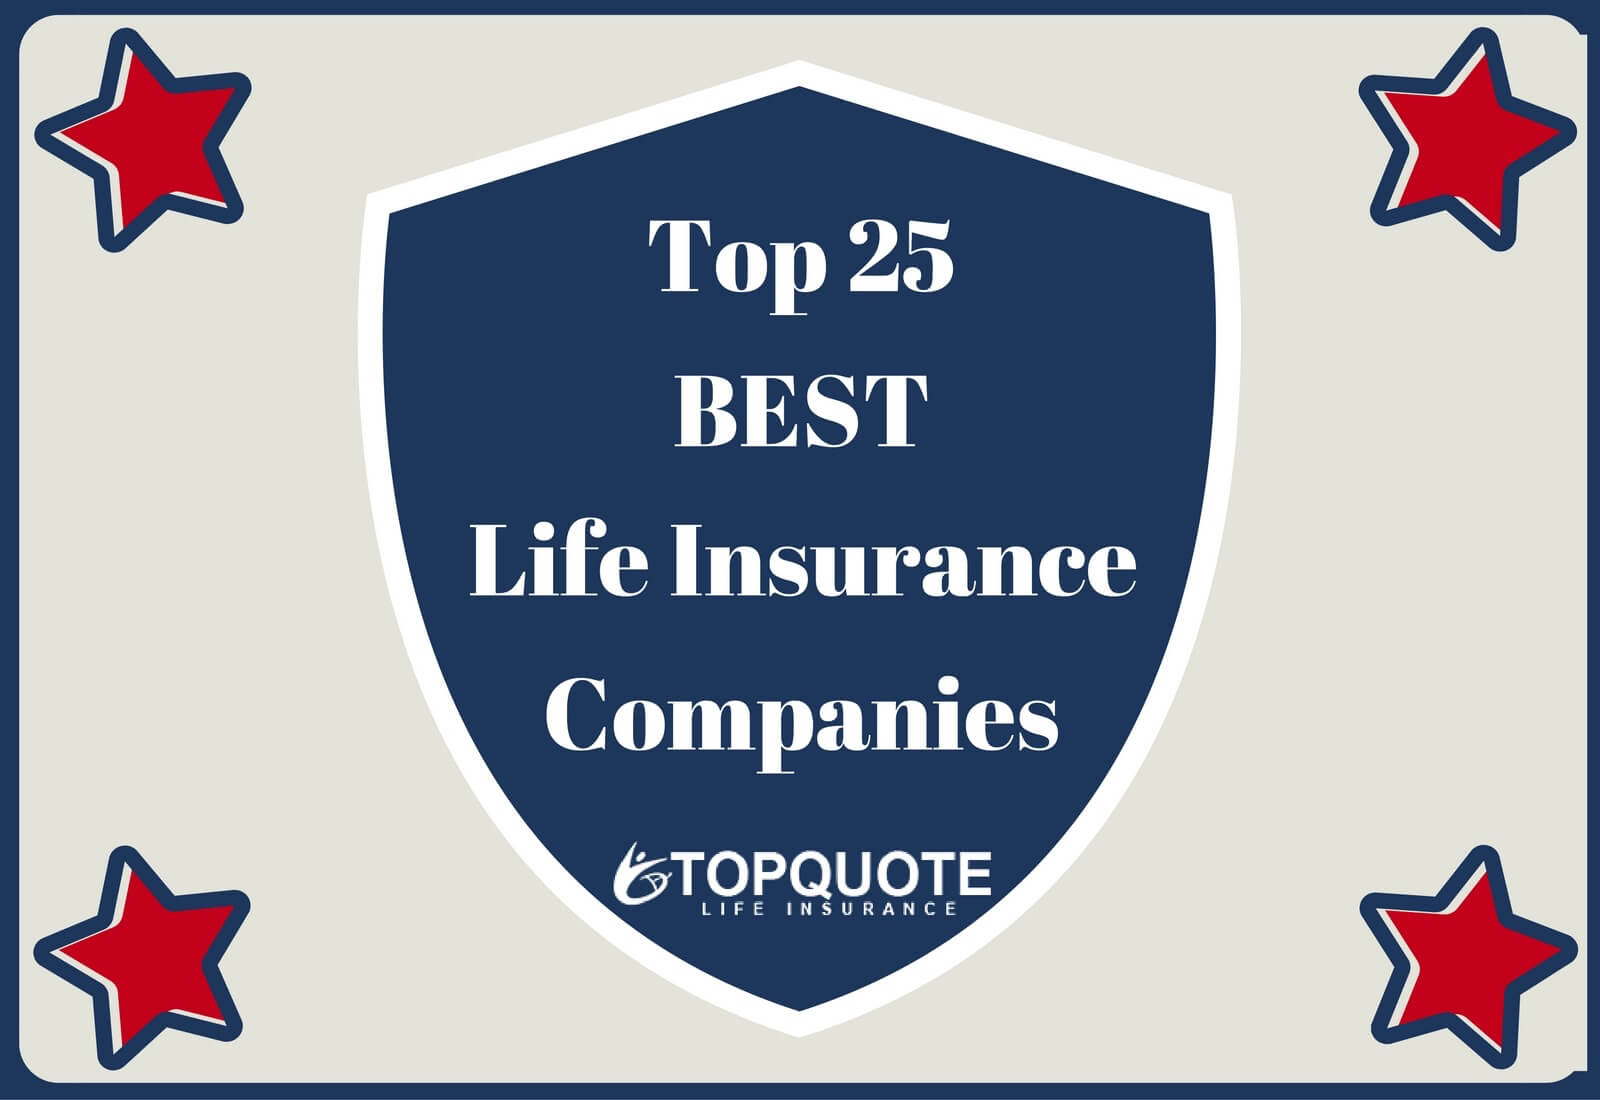 Top Life Insurance Companies >> Top 25 Best Life Insurance Companies In The U S 2019